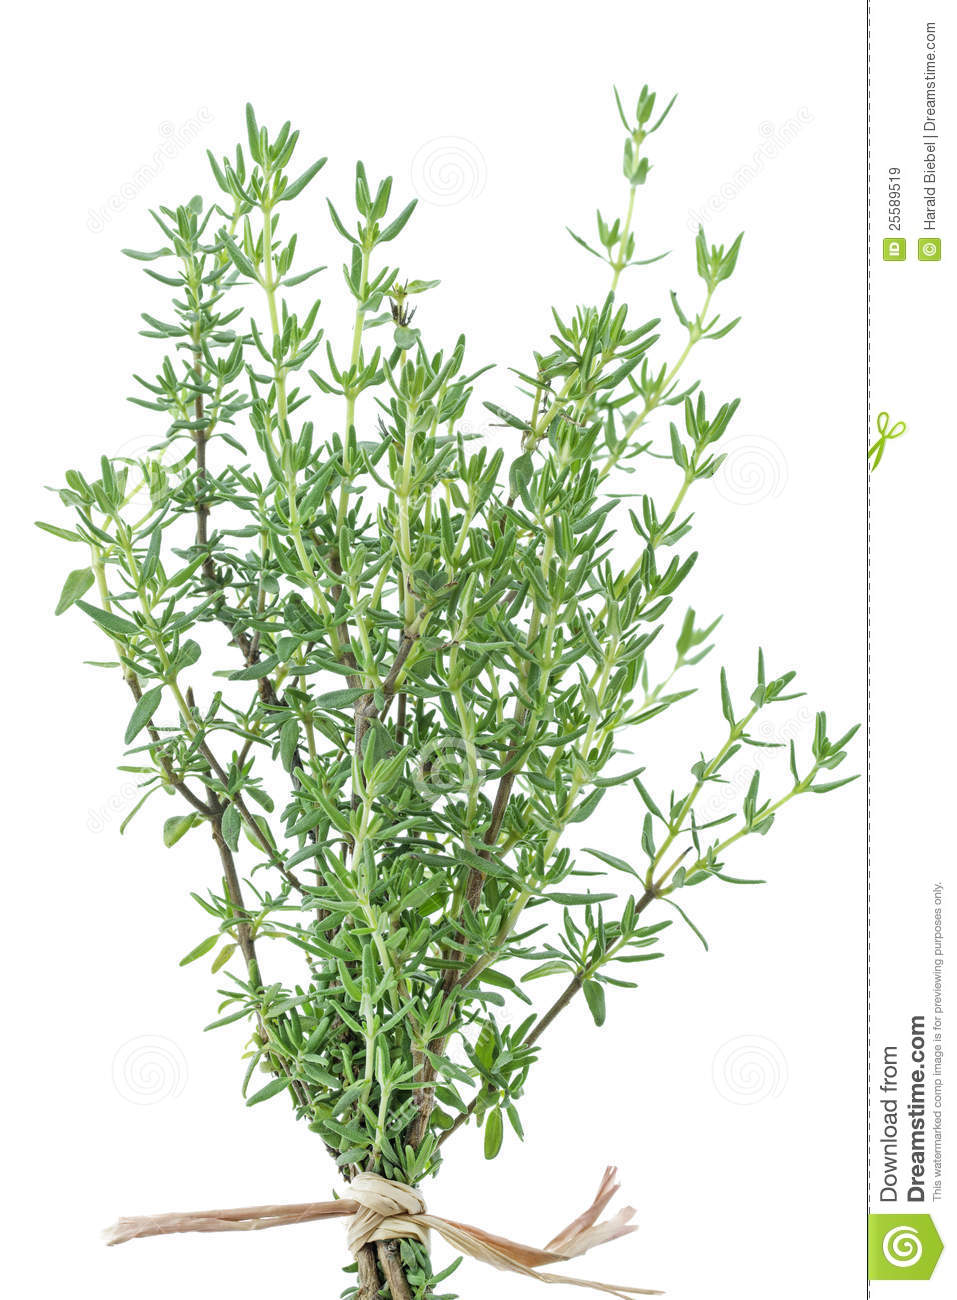 how to cut thyme from plant